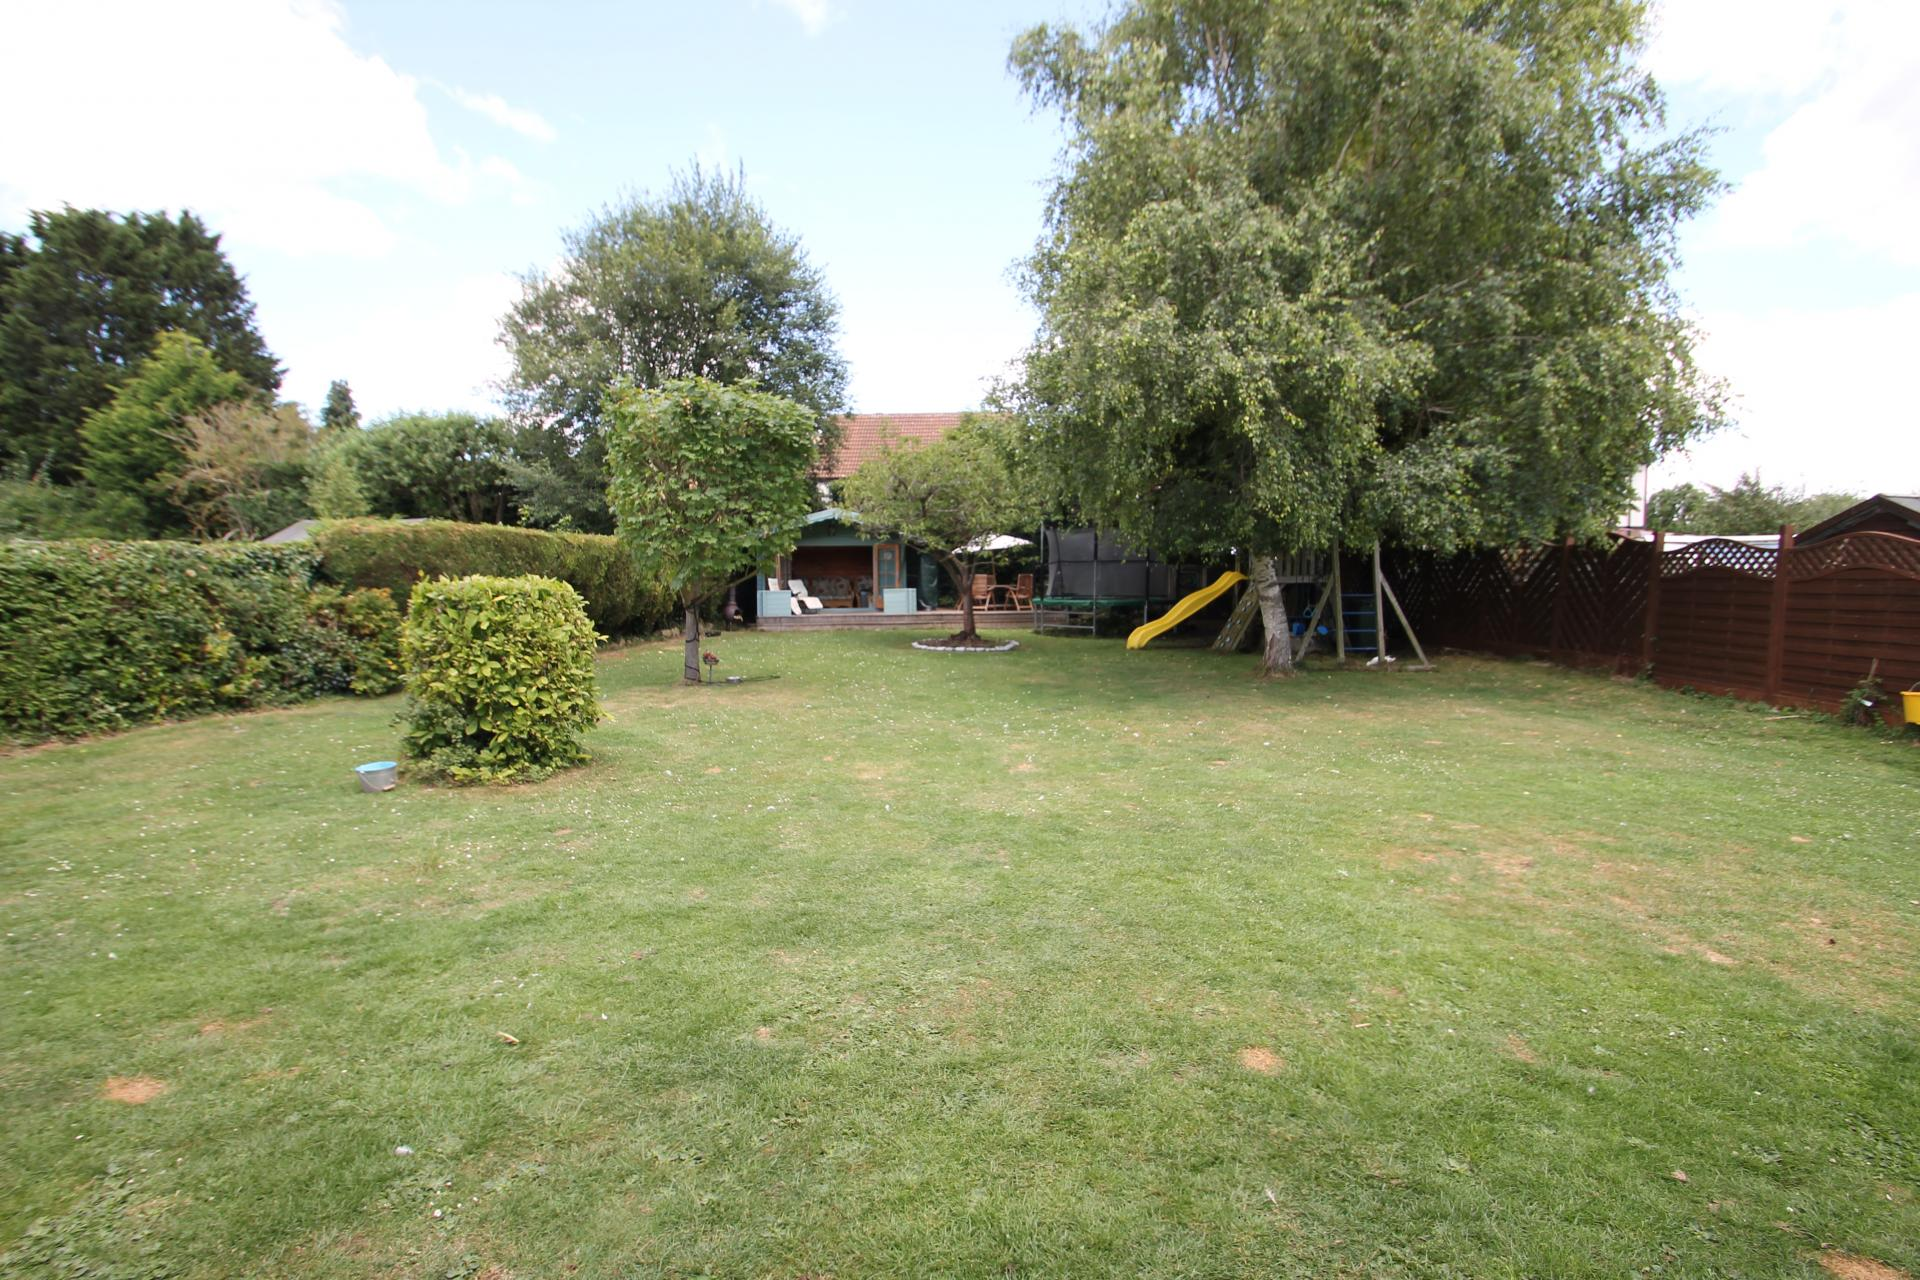 6 Bedroom House For Sale In Dunstable